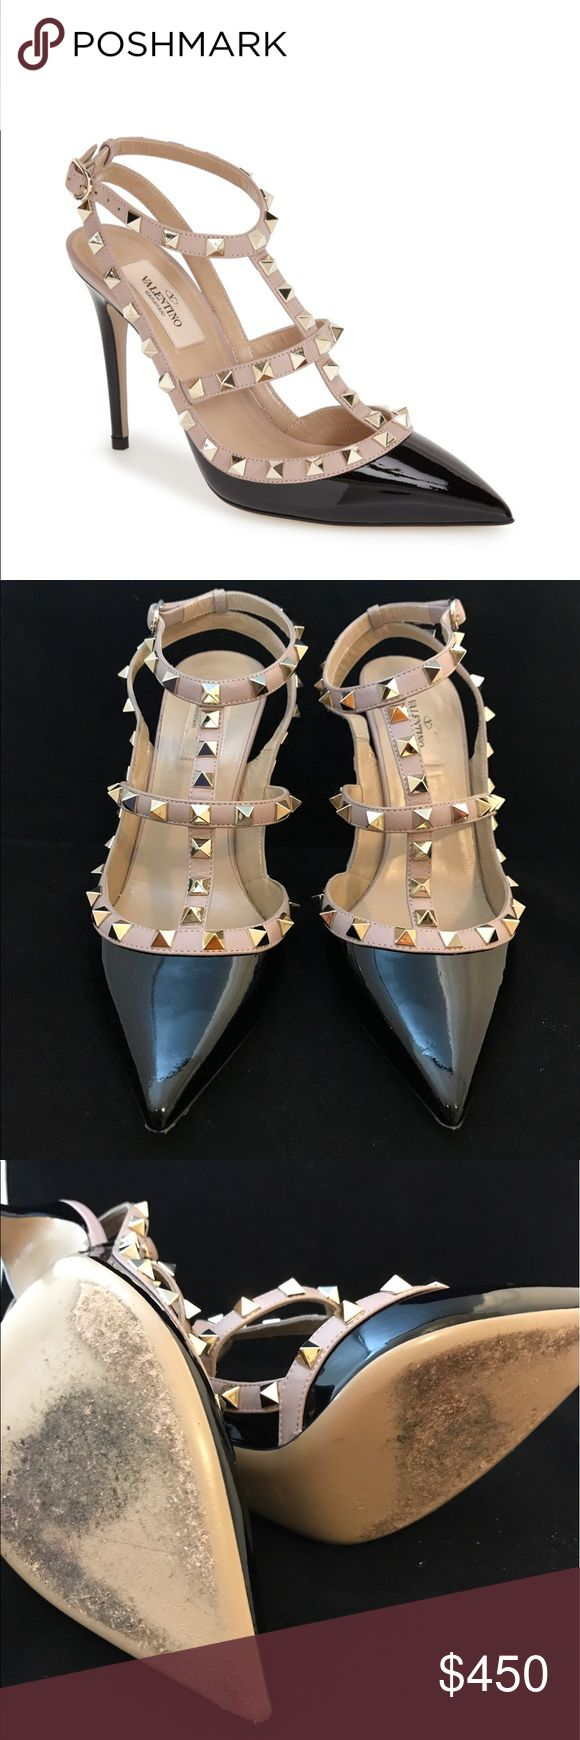 Authentic Valentino rockstud pumps As you can see pictured above has been lightly worn, some scratches on both heels but can barley be seen *it comes with dust bag* Valentino Garavani Shoes Heels